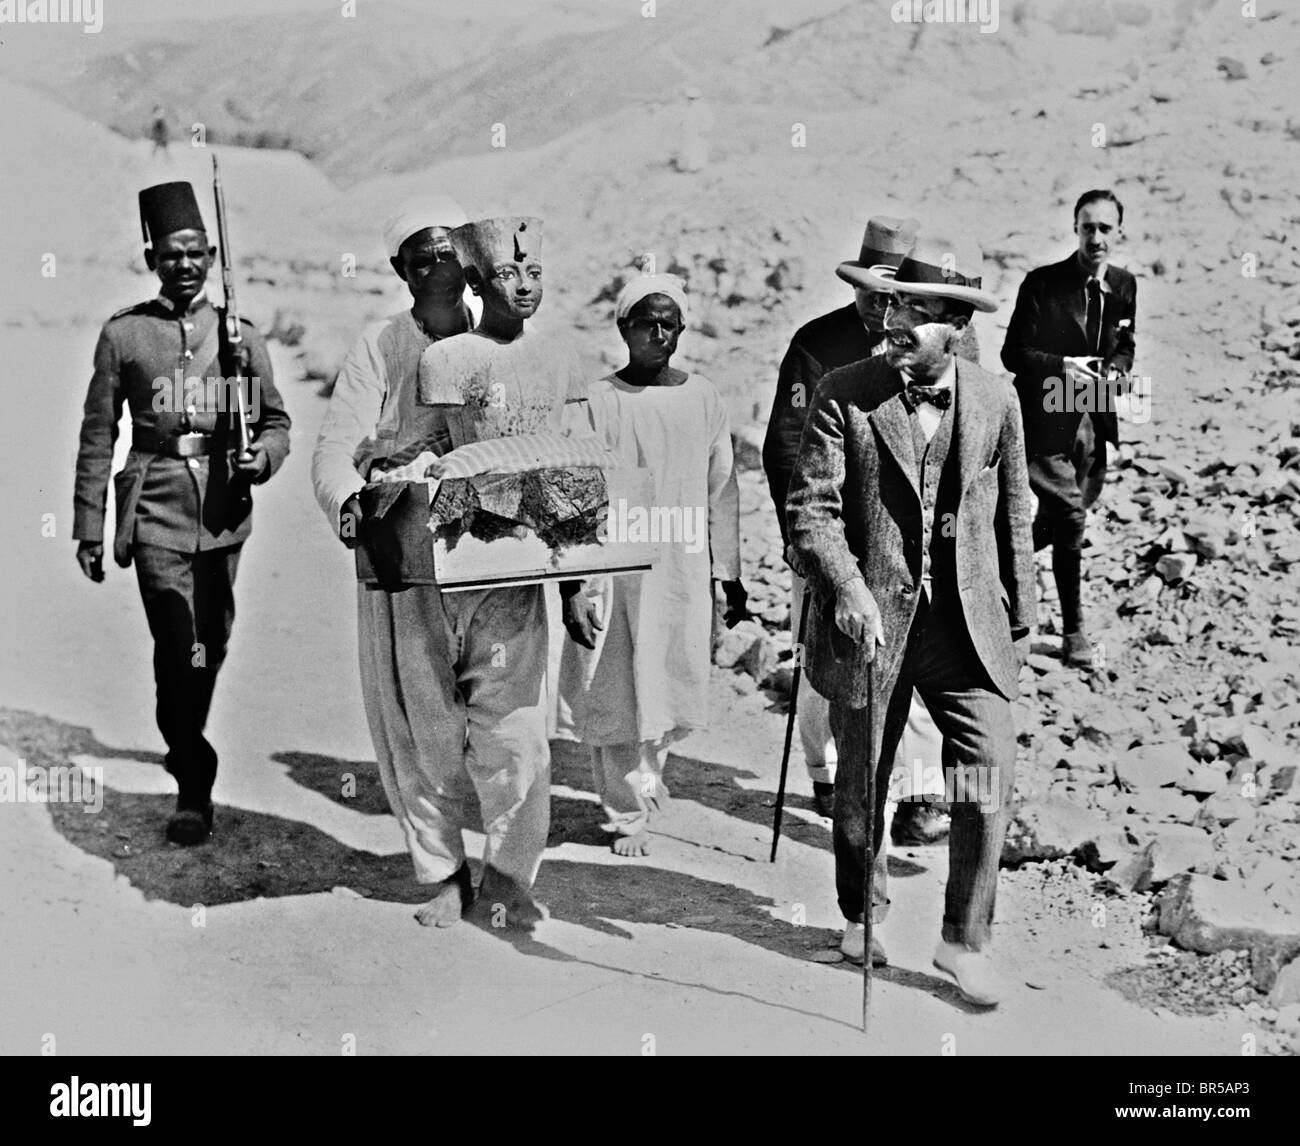 Howard Carter discovered Tutankhamun's tomb in the Valley of the Kings, near Luxor in Egypt in November 1922. - Stock Image